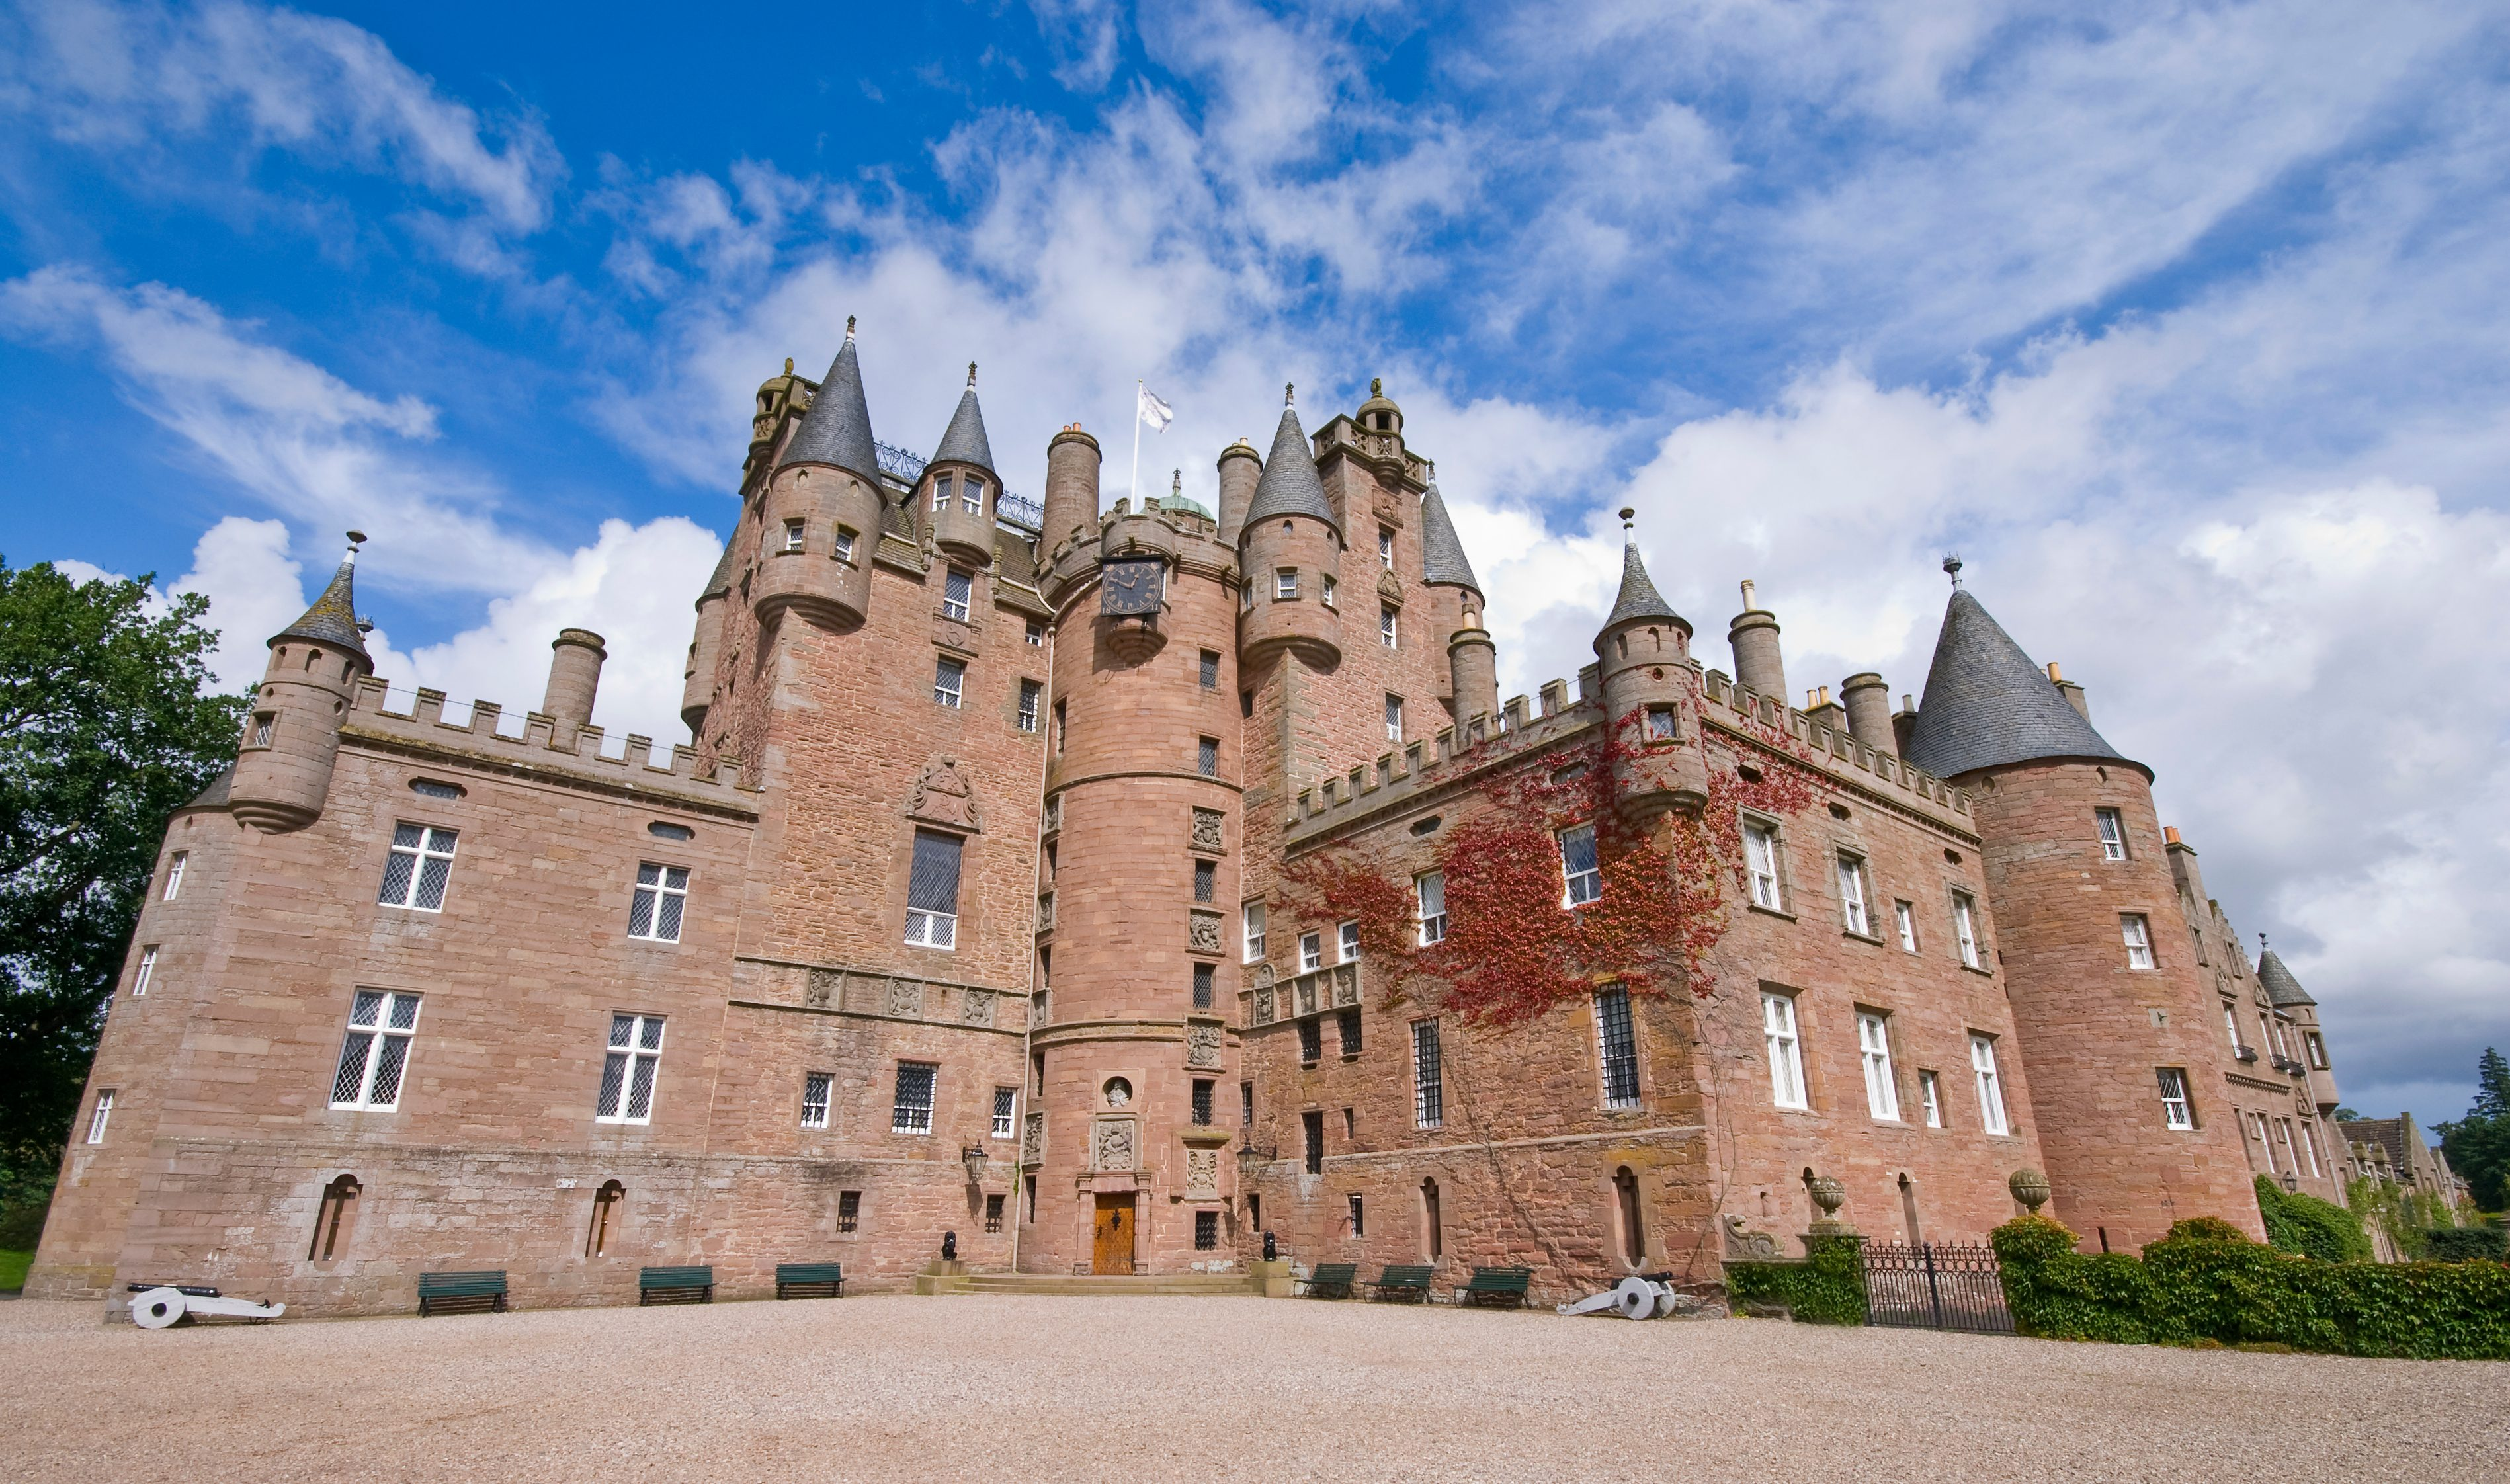 Glamis Castle in Scotland during the day